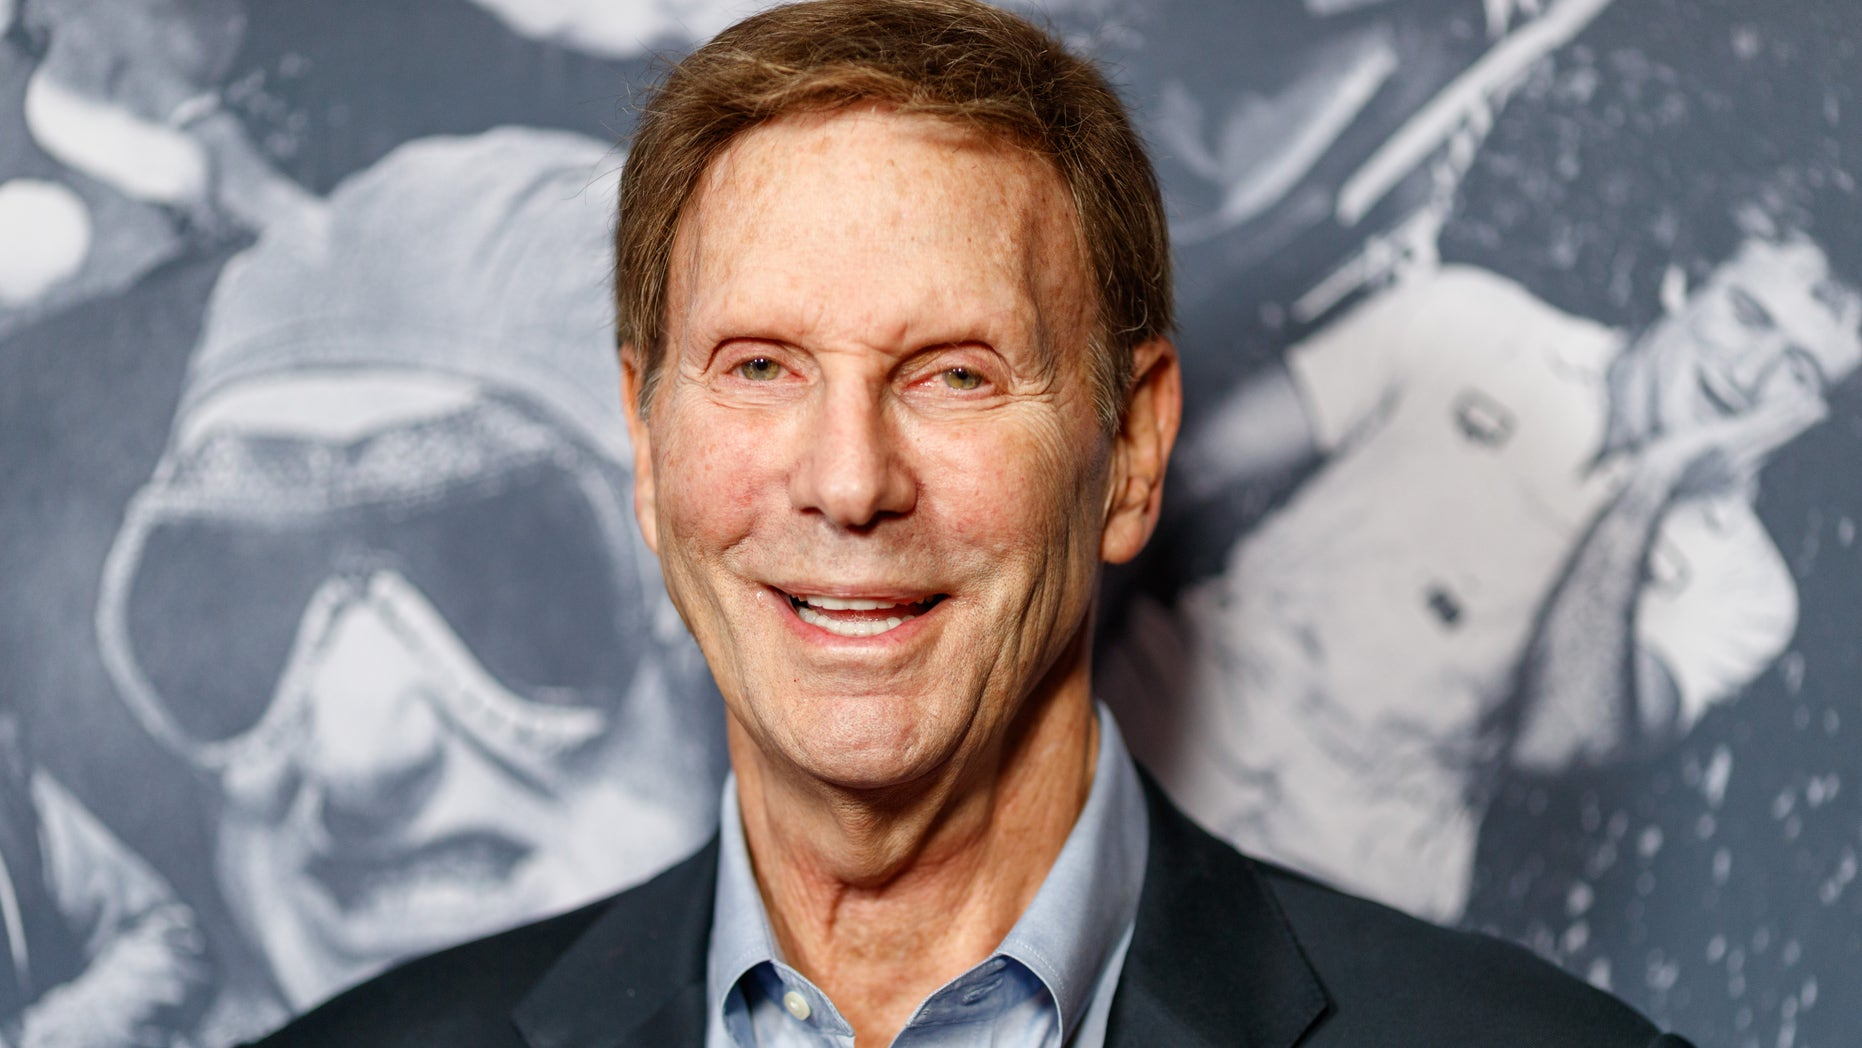 Bob Einstein, 'Curb Your Enthusiasm' actor, dead at 76